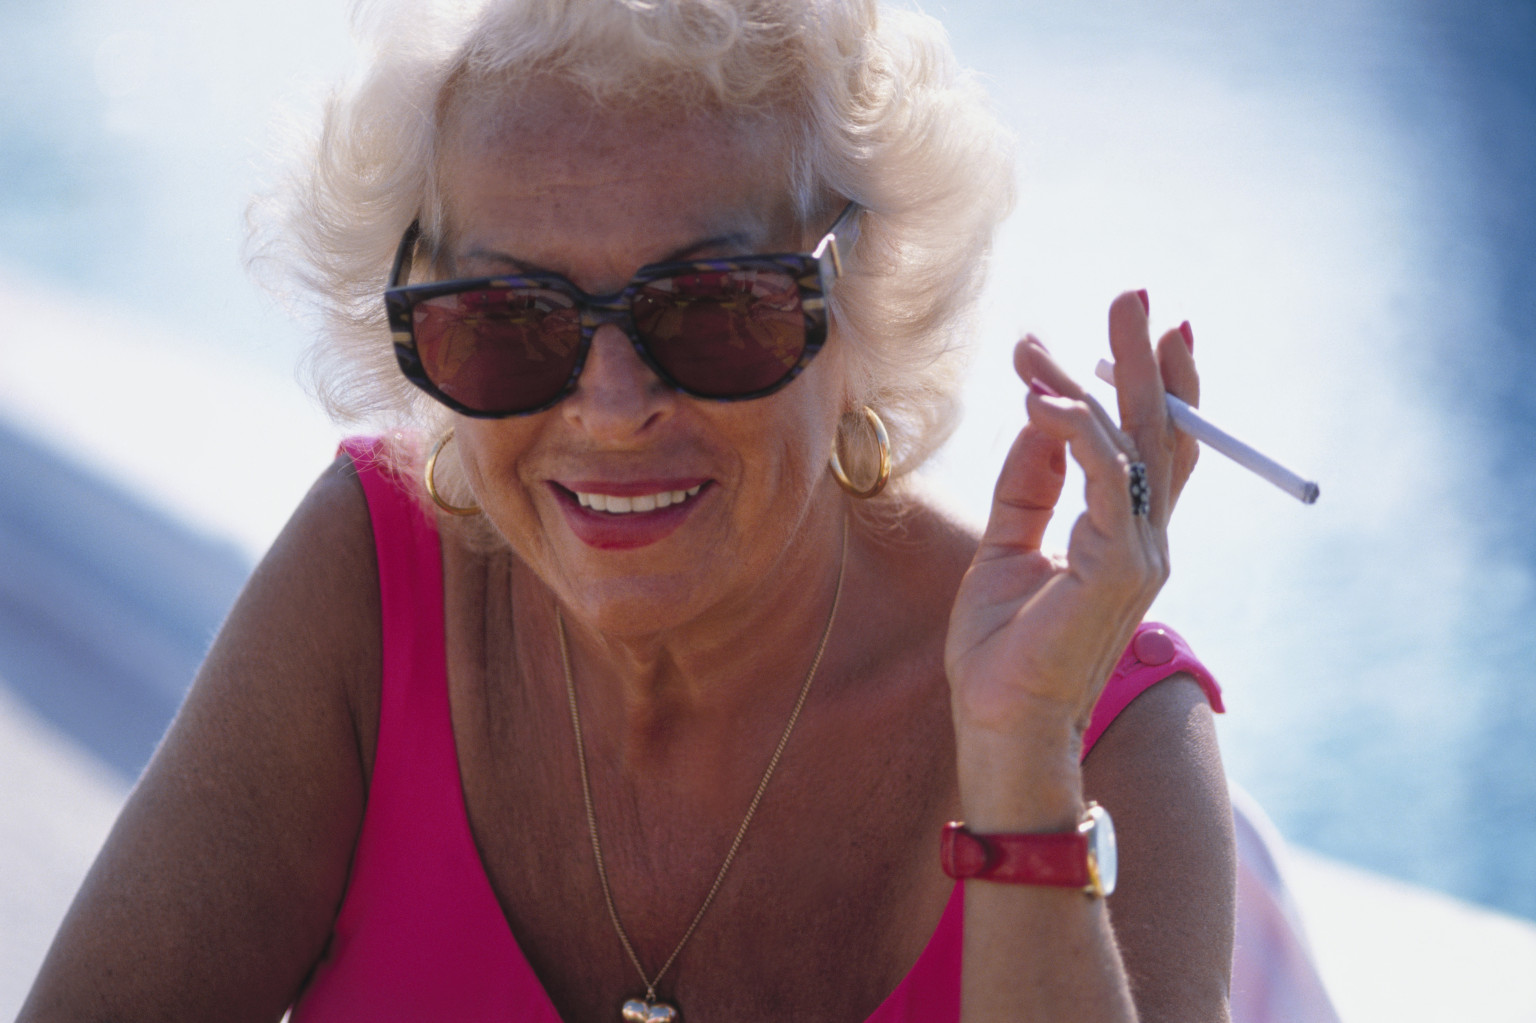 Old women smoking cigarettes opinion